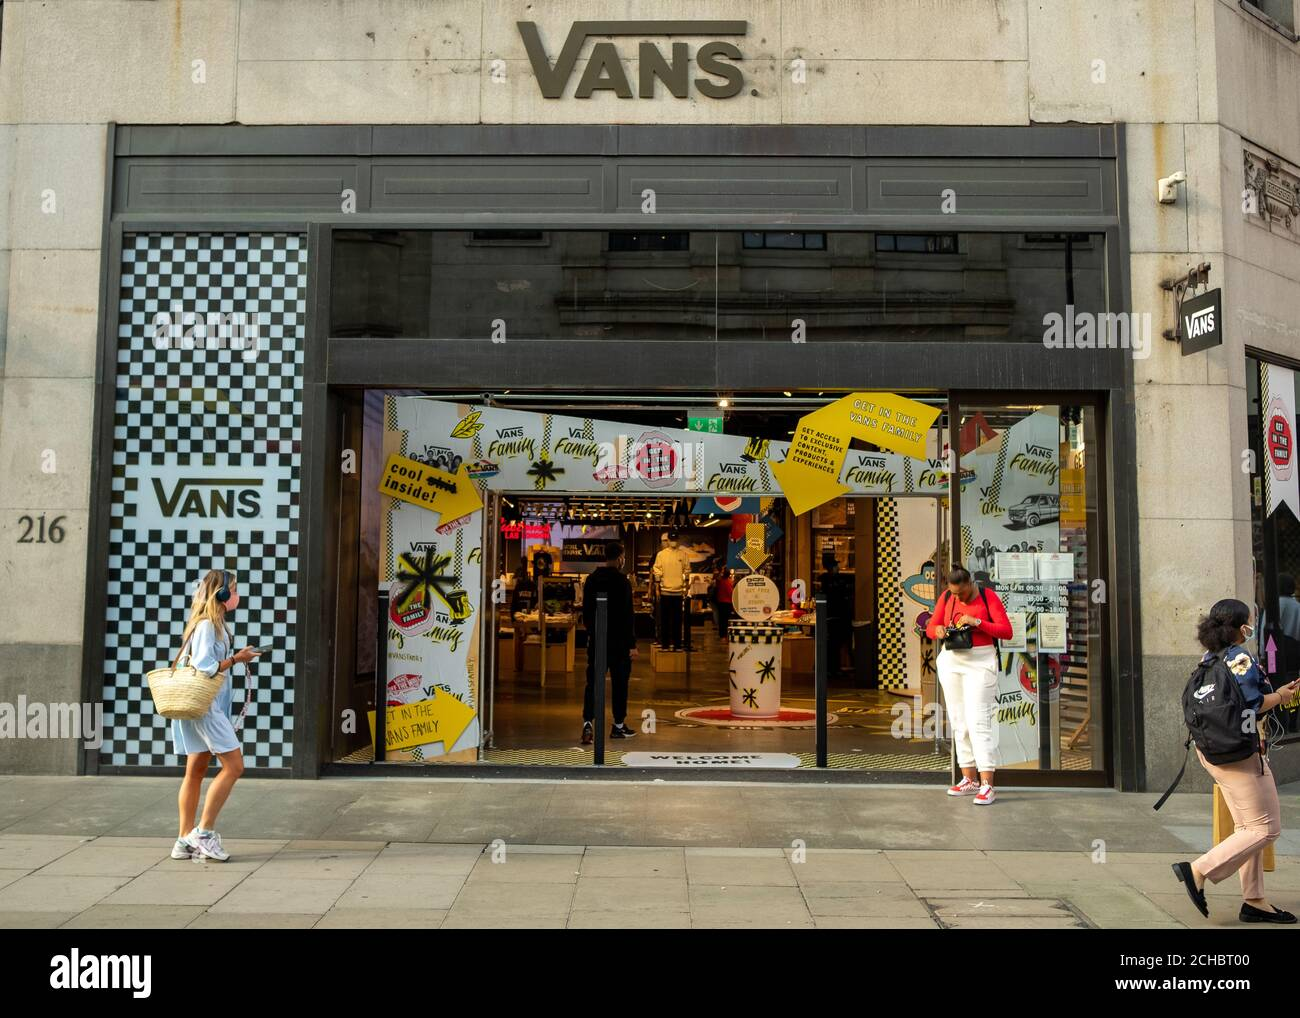 Torrente enfermedad Intermedio  Vans Store High Resolution Stock Photography and Images - Alamy